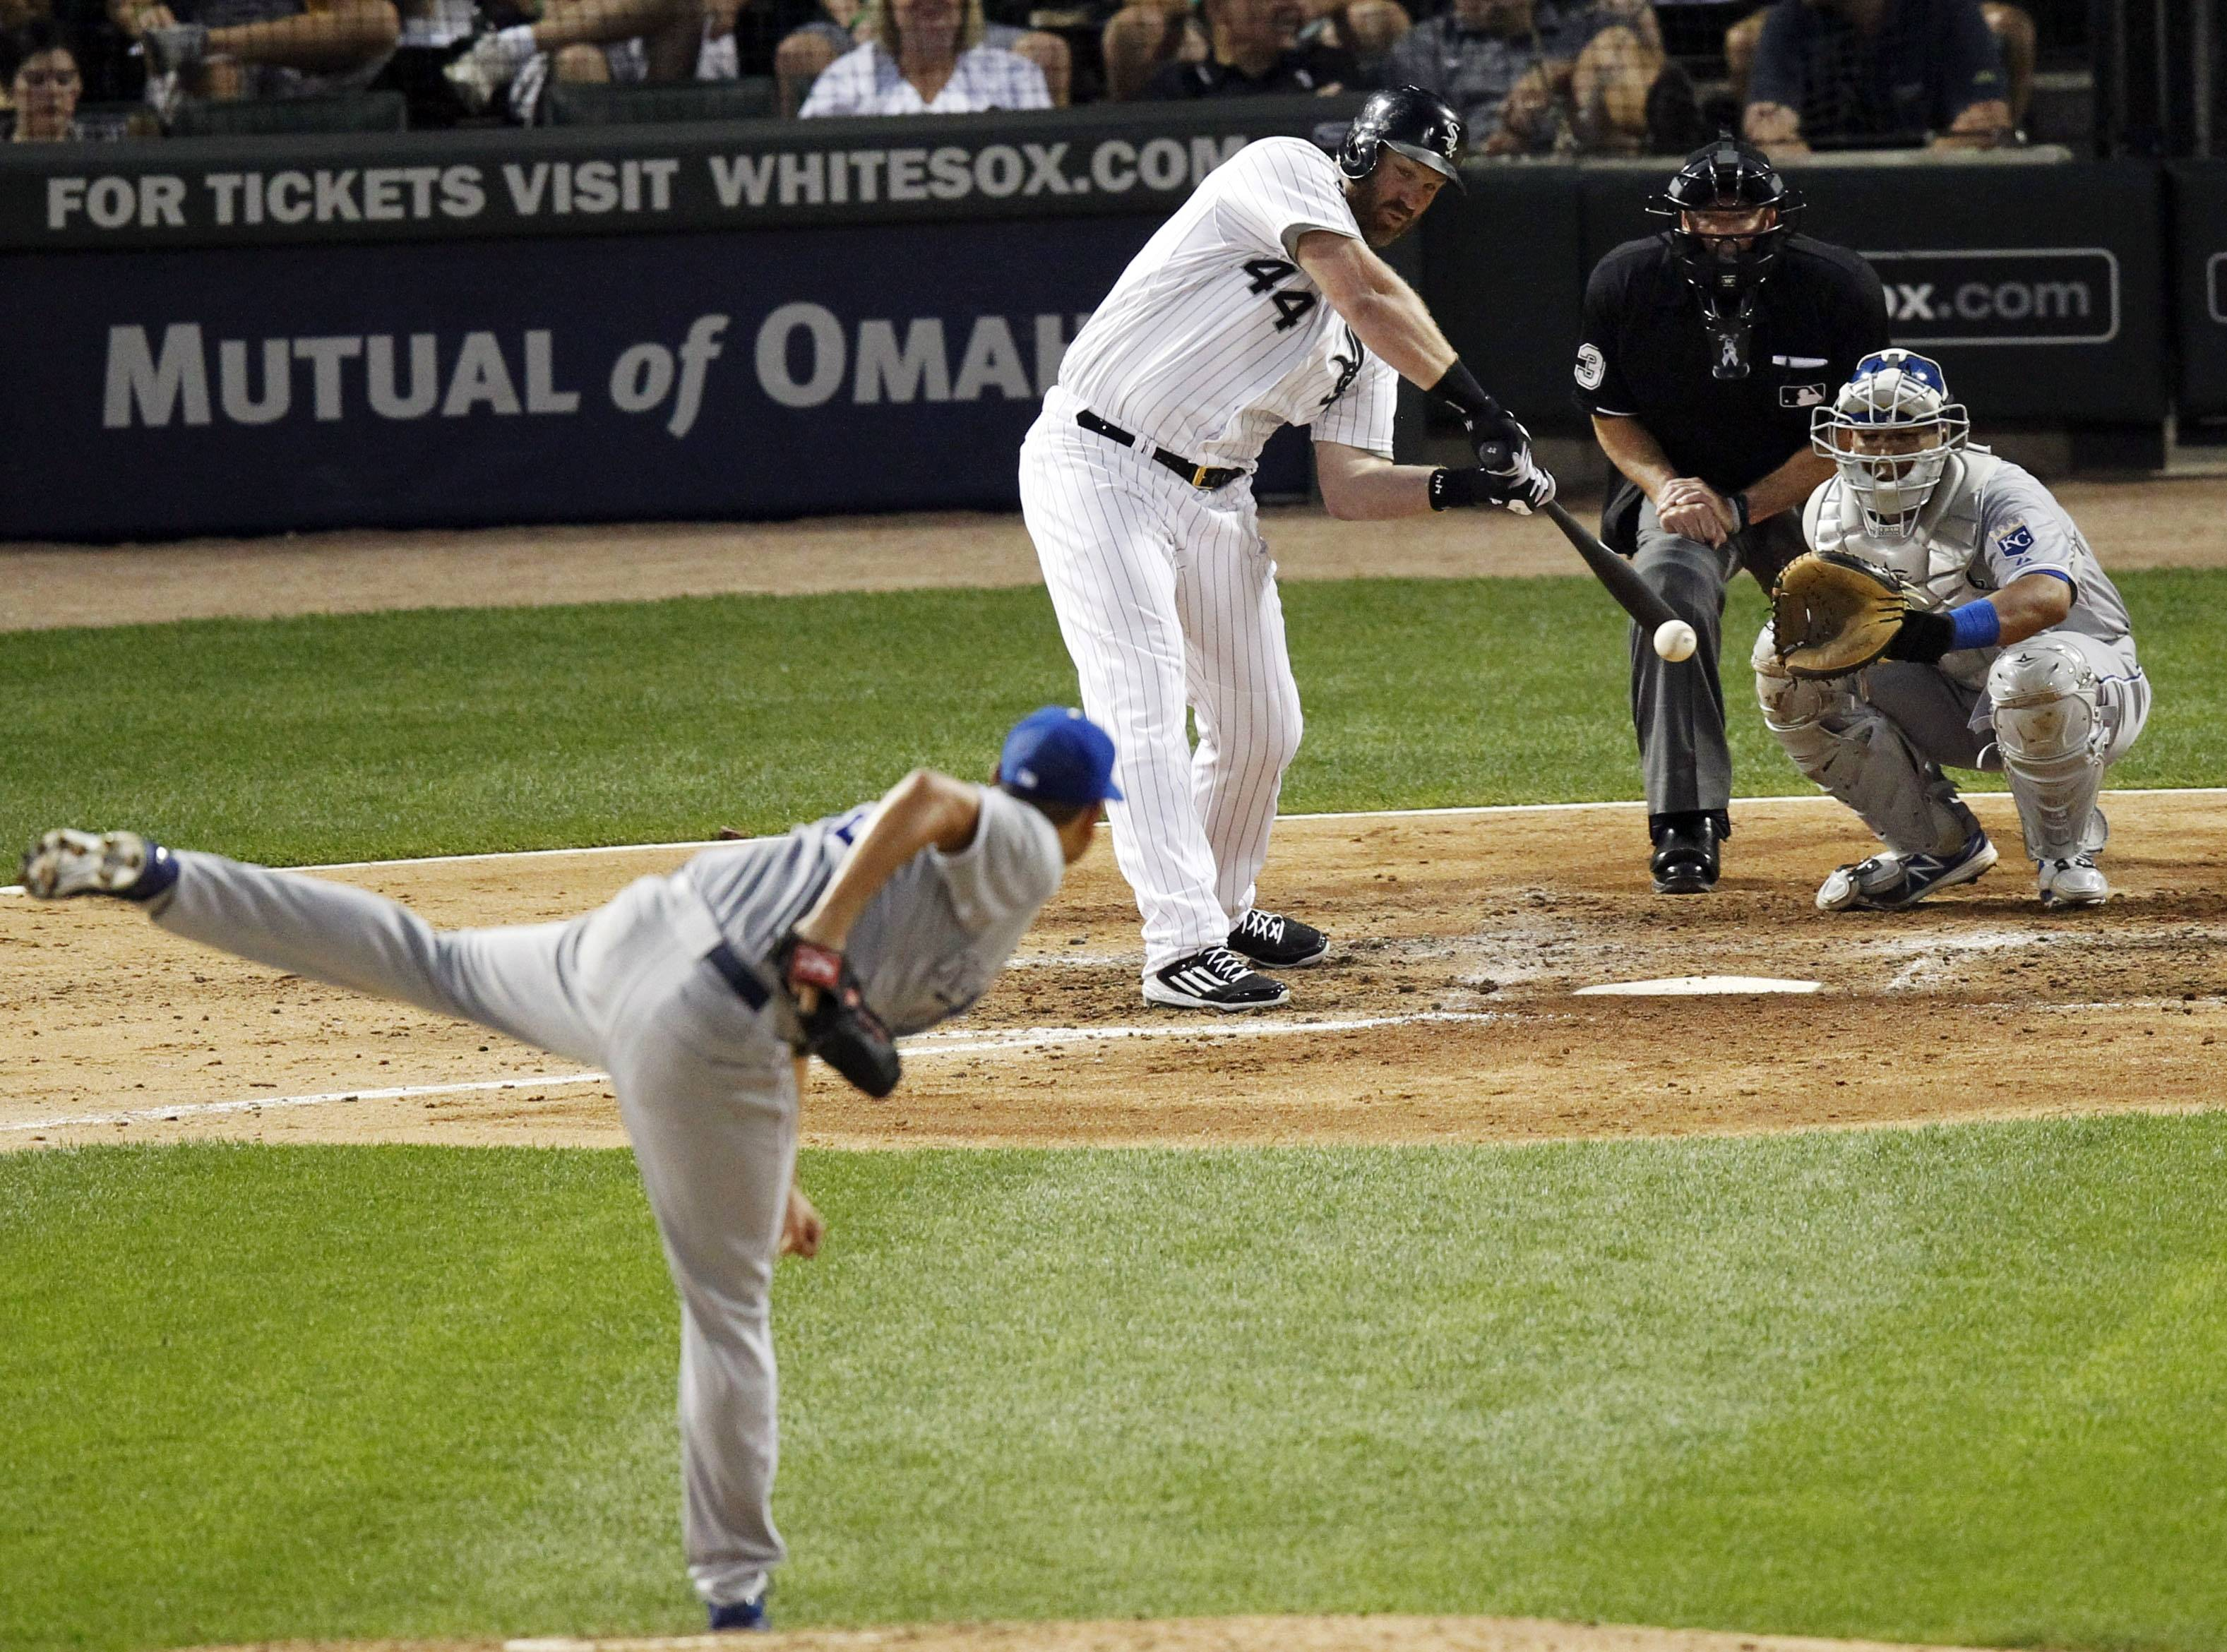 The White Sox's Adam Dunn hits a home run off Kansas City Royals' Bruce Chen during Tuesday's game at U.S. Cellular Field. The Sox lost 7-1.